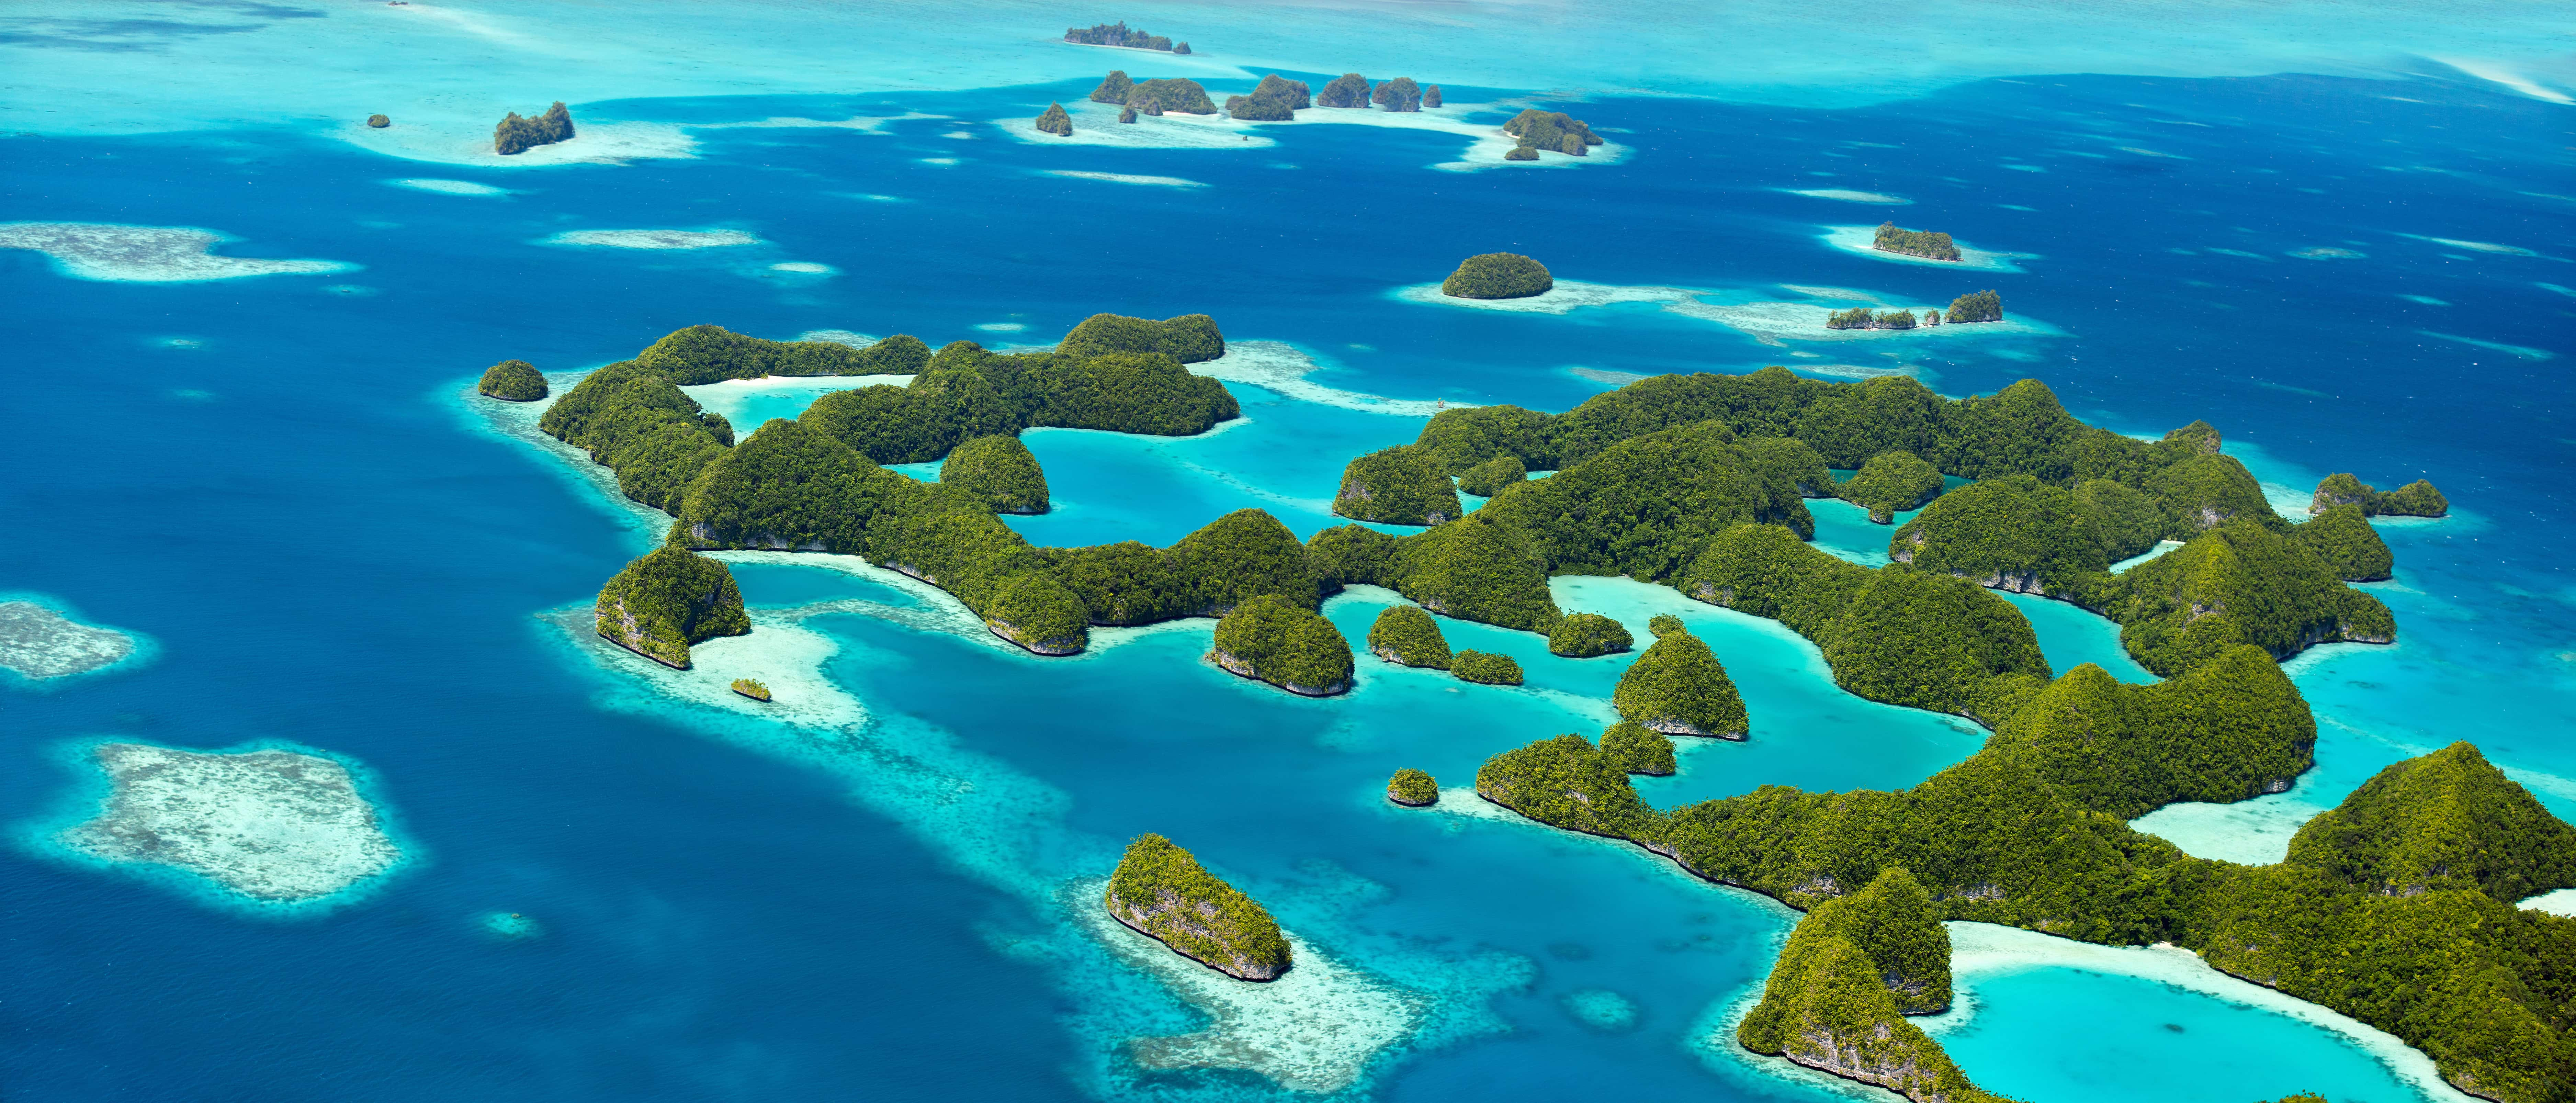 Trips in Palau